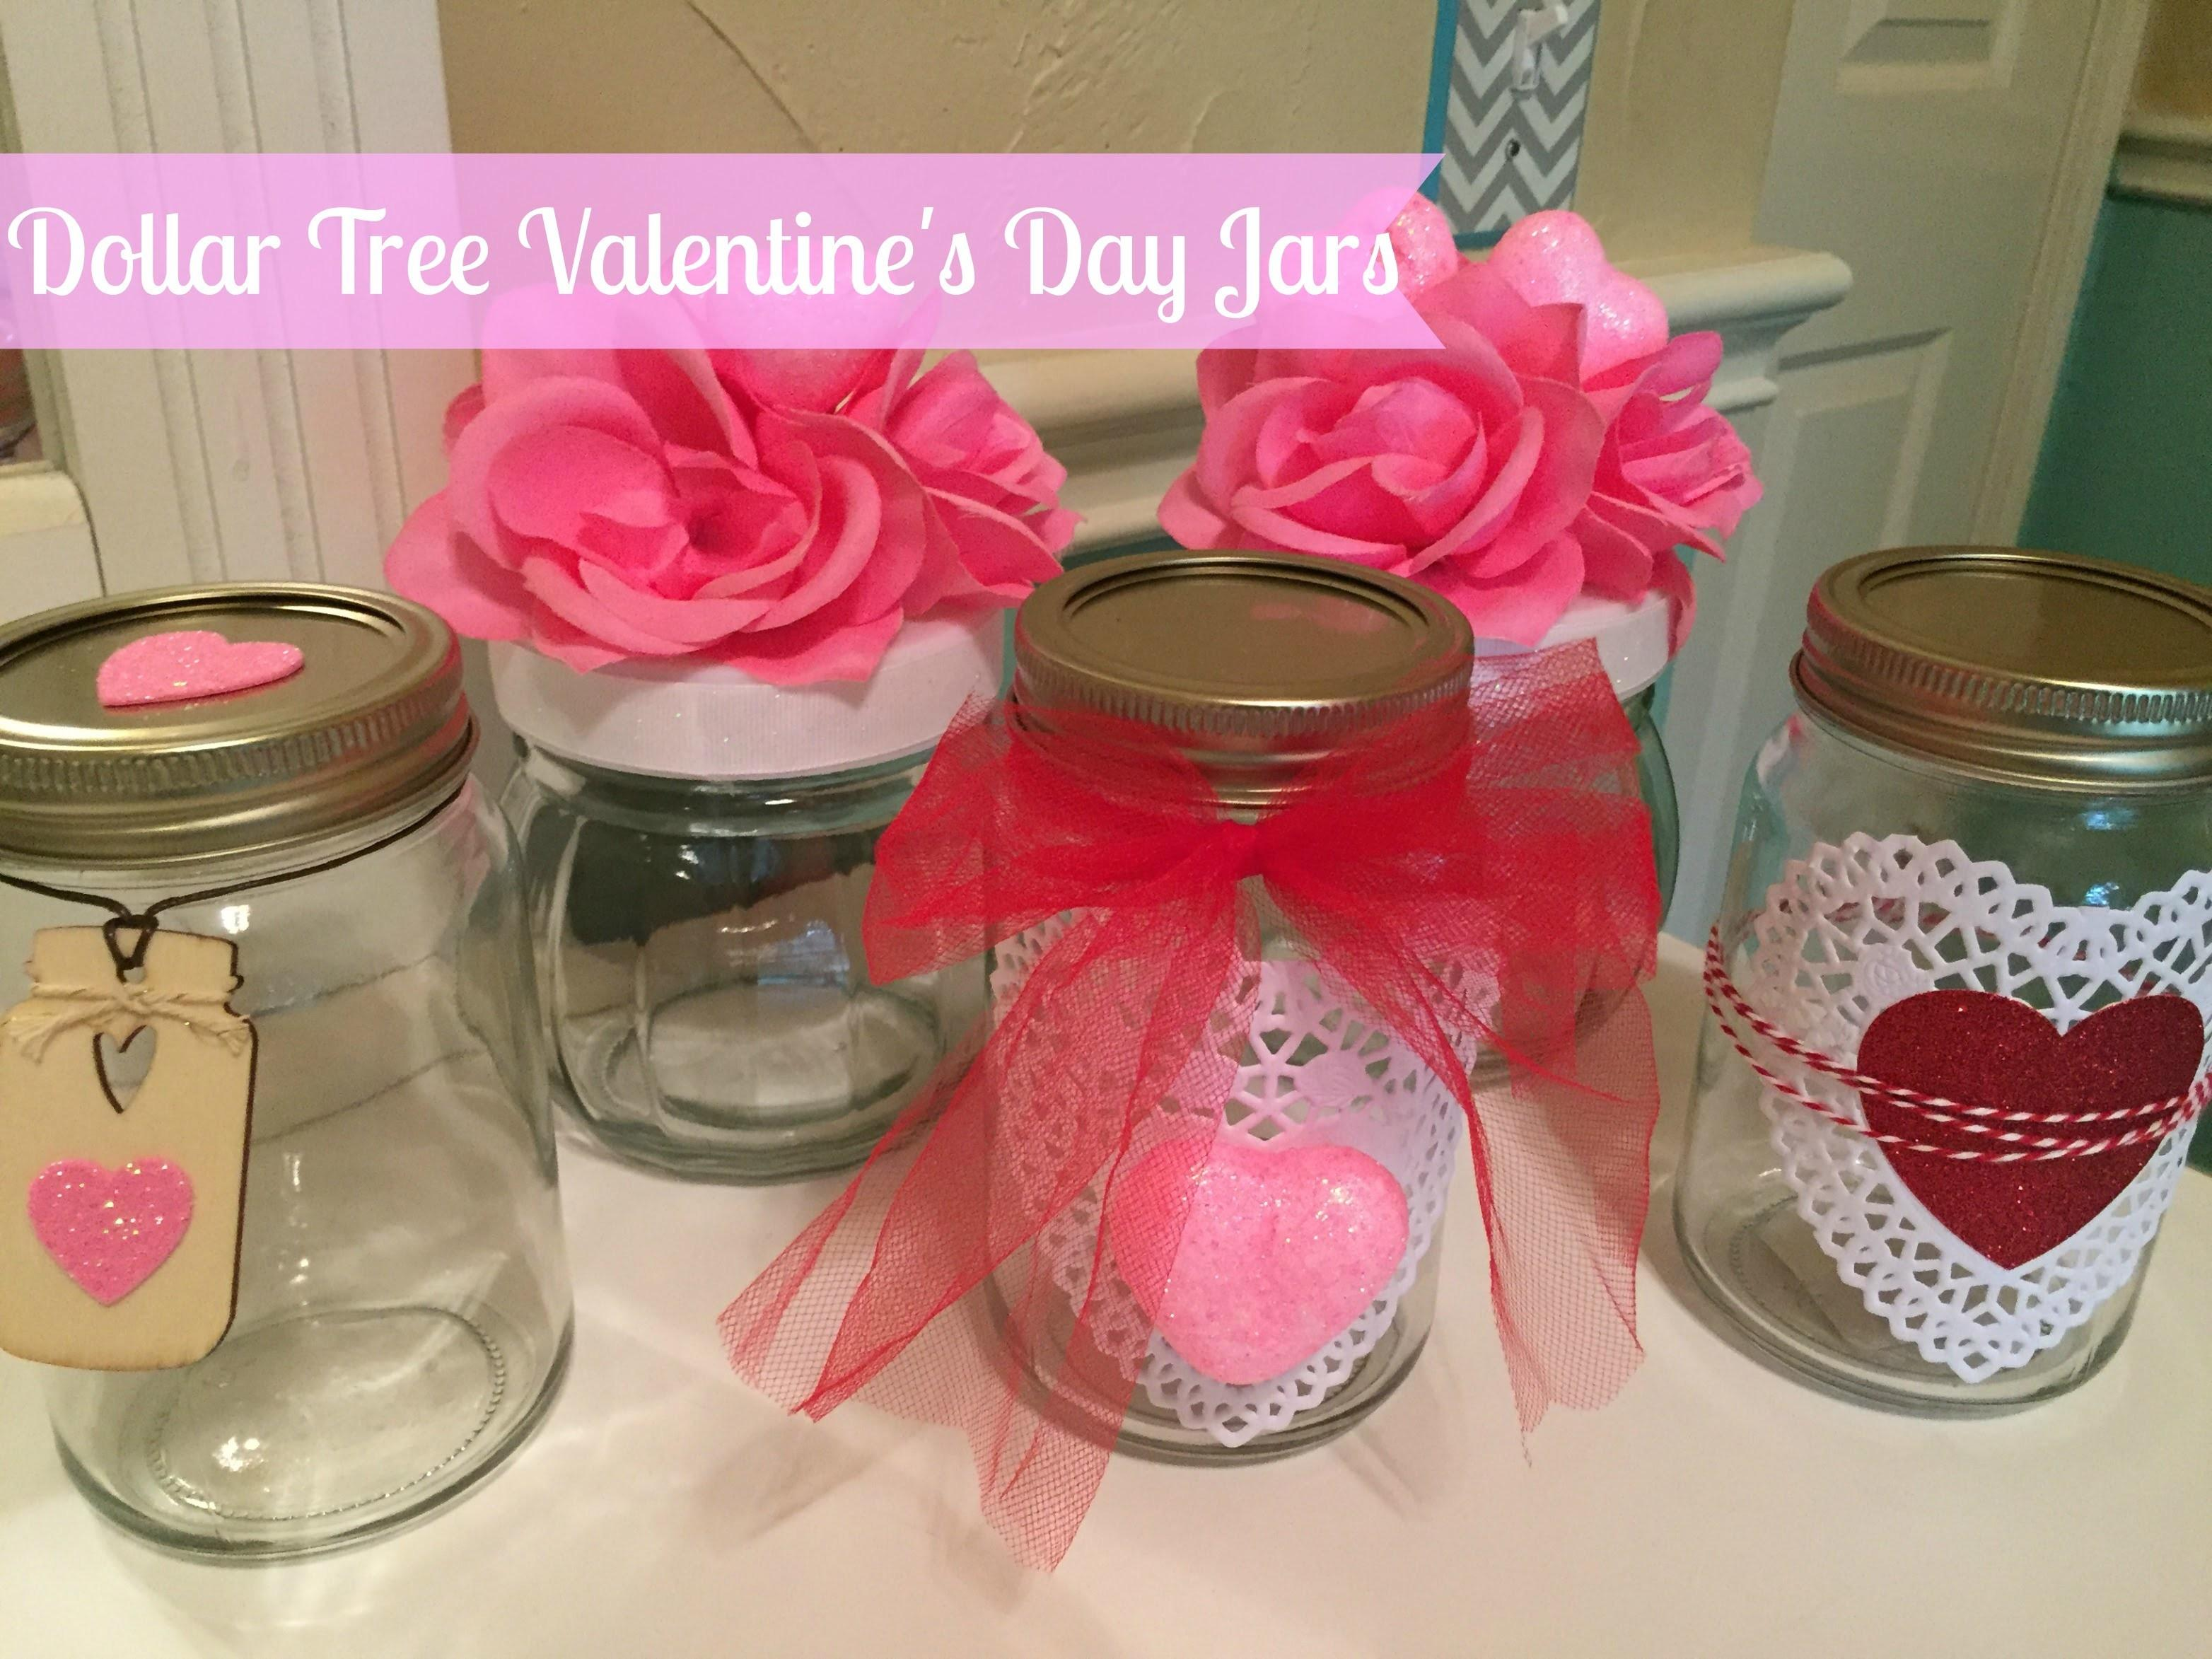 Dollar Tree Diy Valentine Day Decor Jars